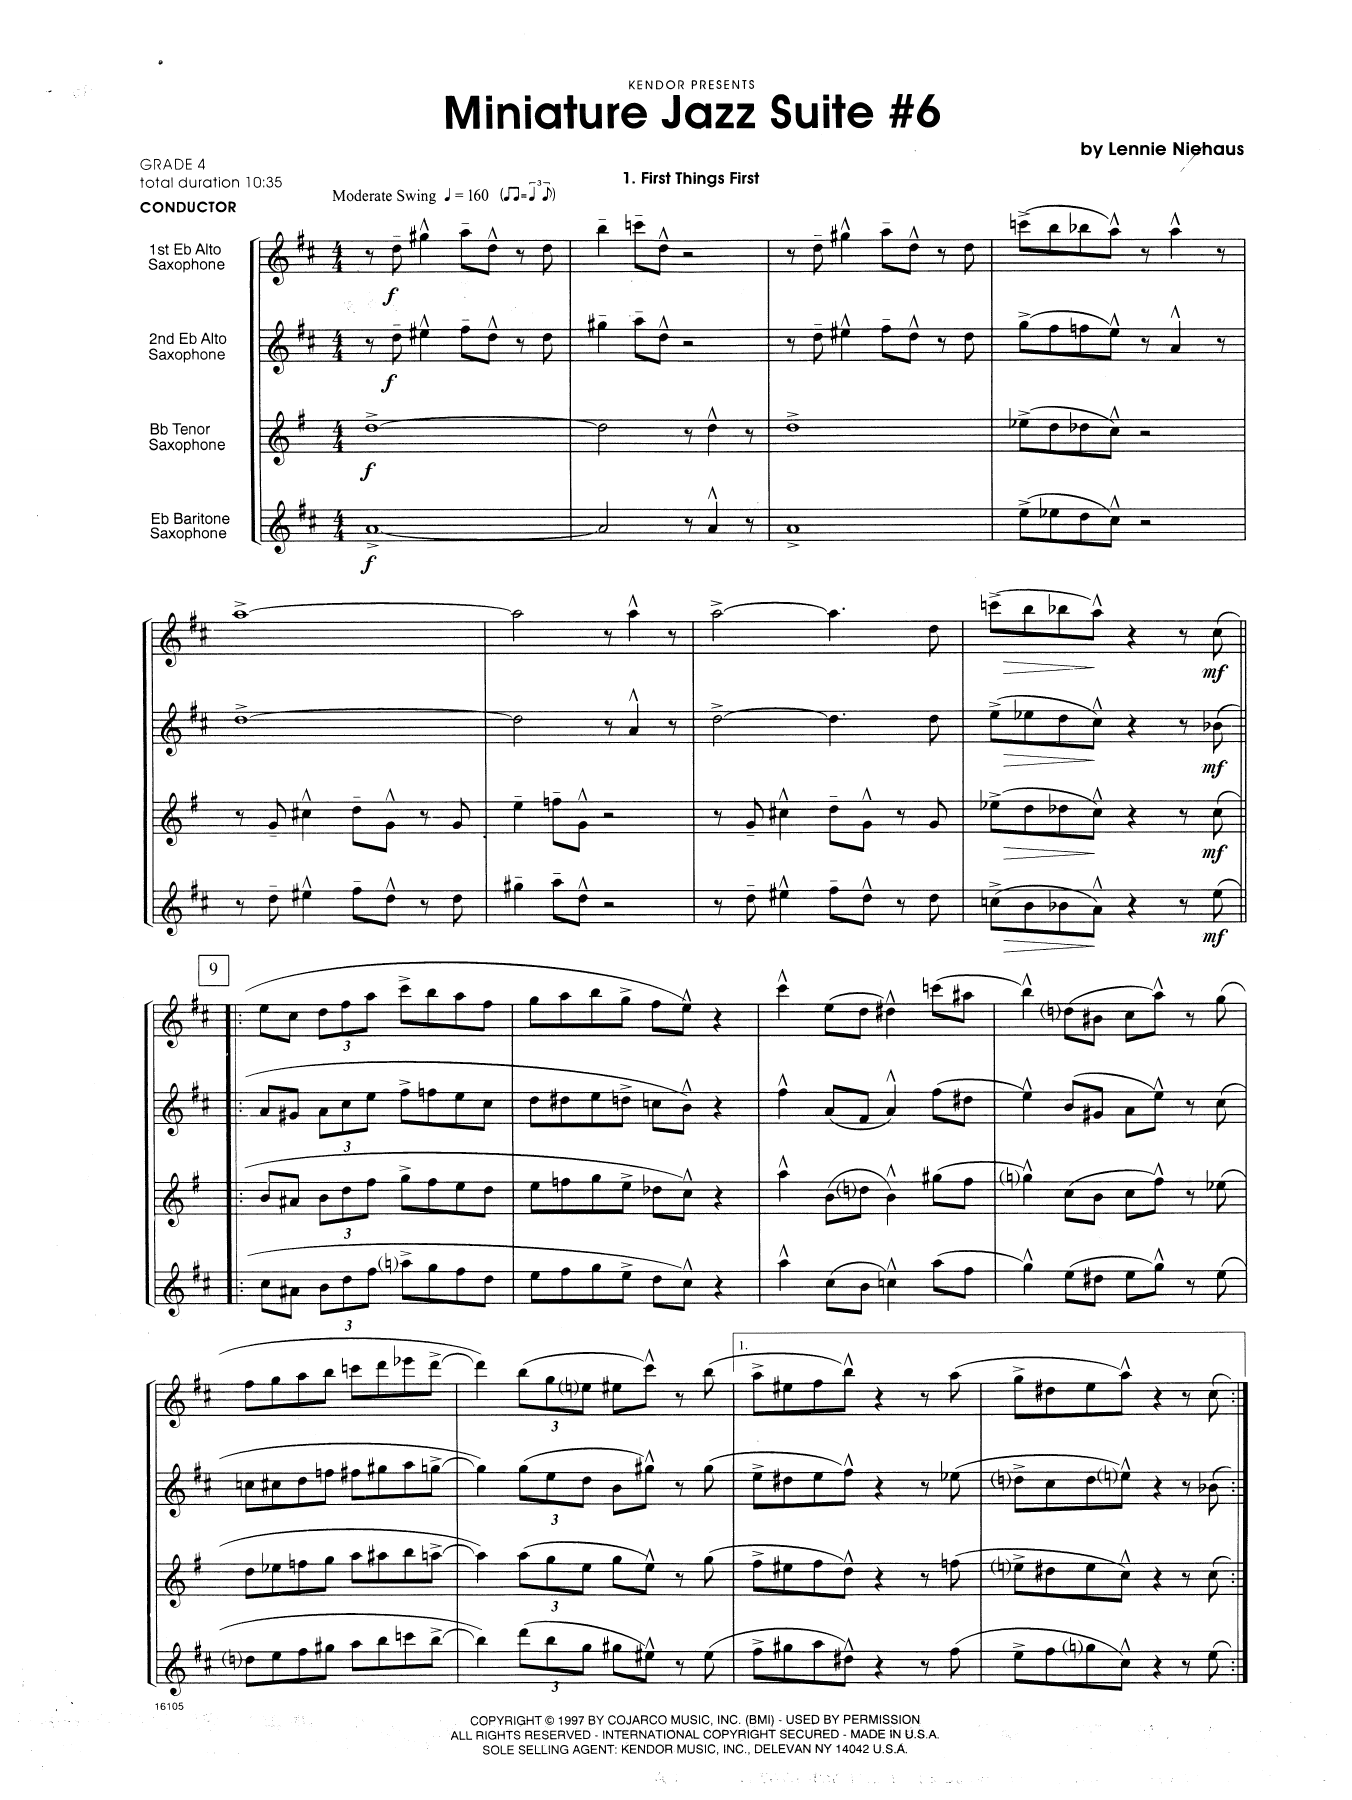 Miniature Jazz Suite #6, Four Movements - Full Score Sheet Music